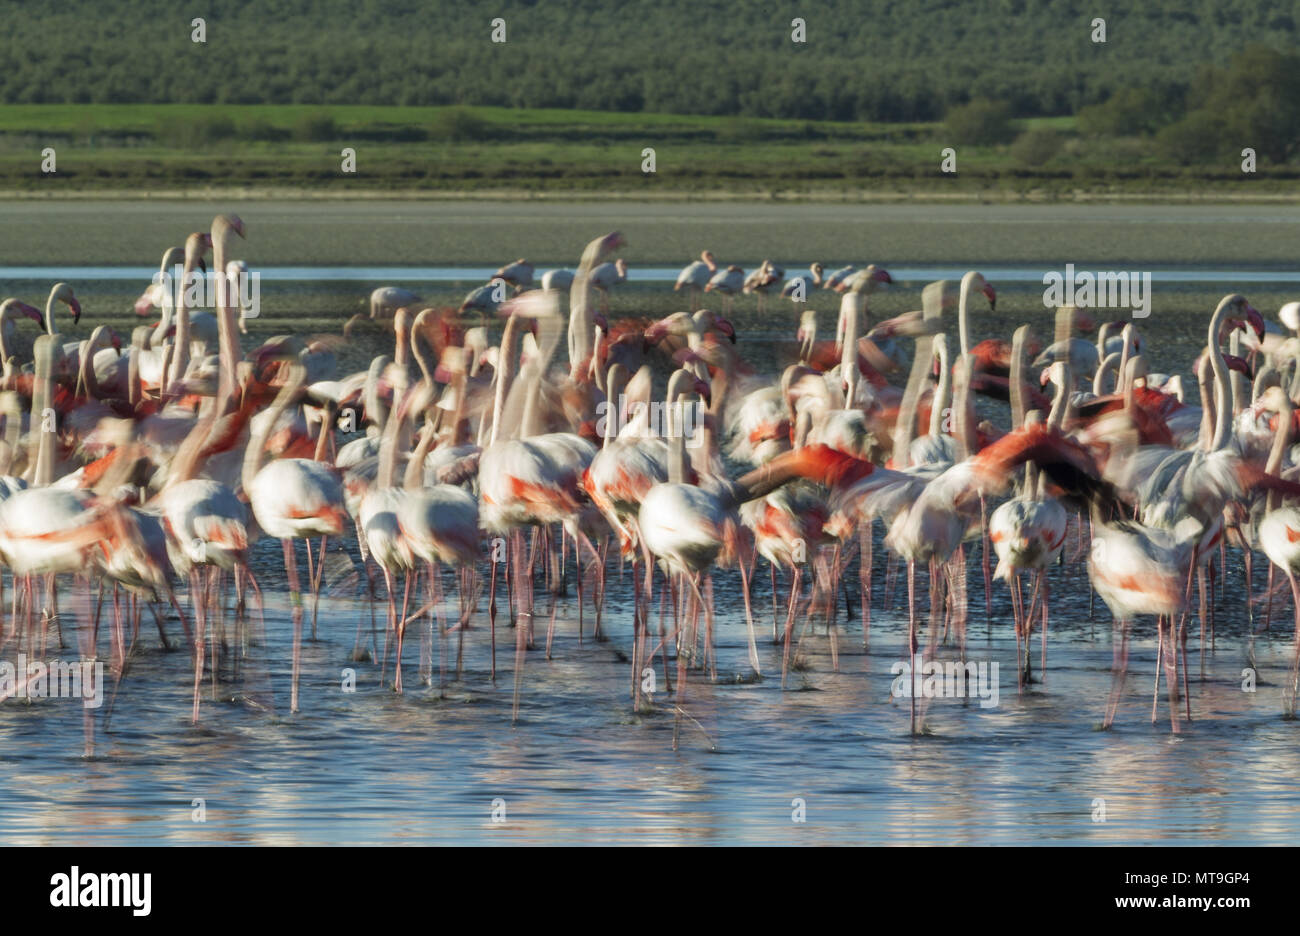 Greater Flamingo (Phoenicopterus roseus). Nervous at the Laguna de Fuente de Piedra near the town of Antequera. This is the largest natural lake in Andalusia and Europe's only inland breeding ground for this species. Blurred effect by panning the camera. Malaga province, Andalusia, Spain. - Stock Image